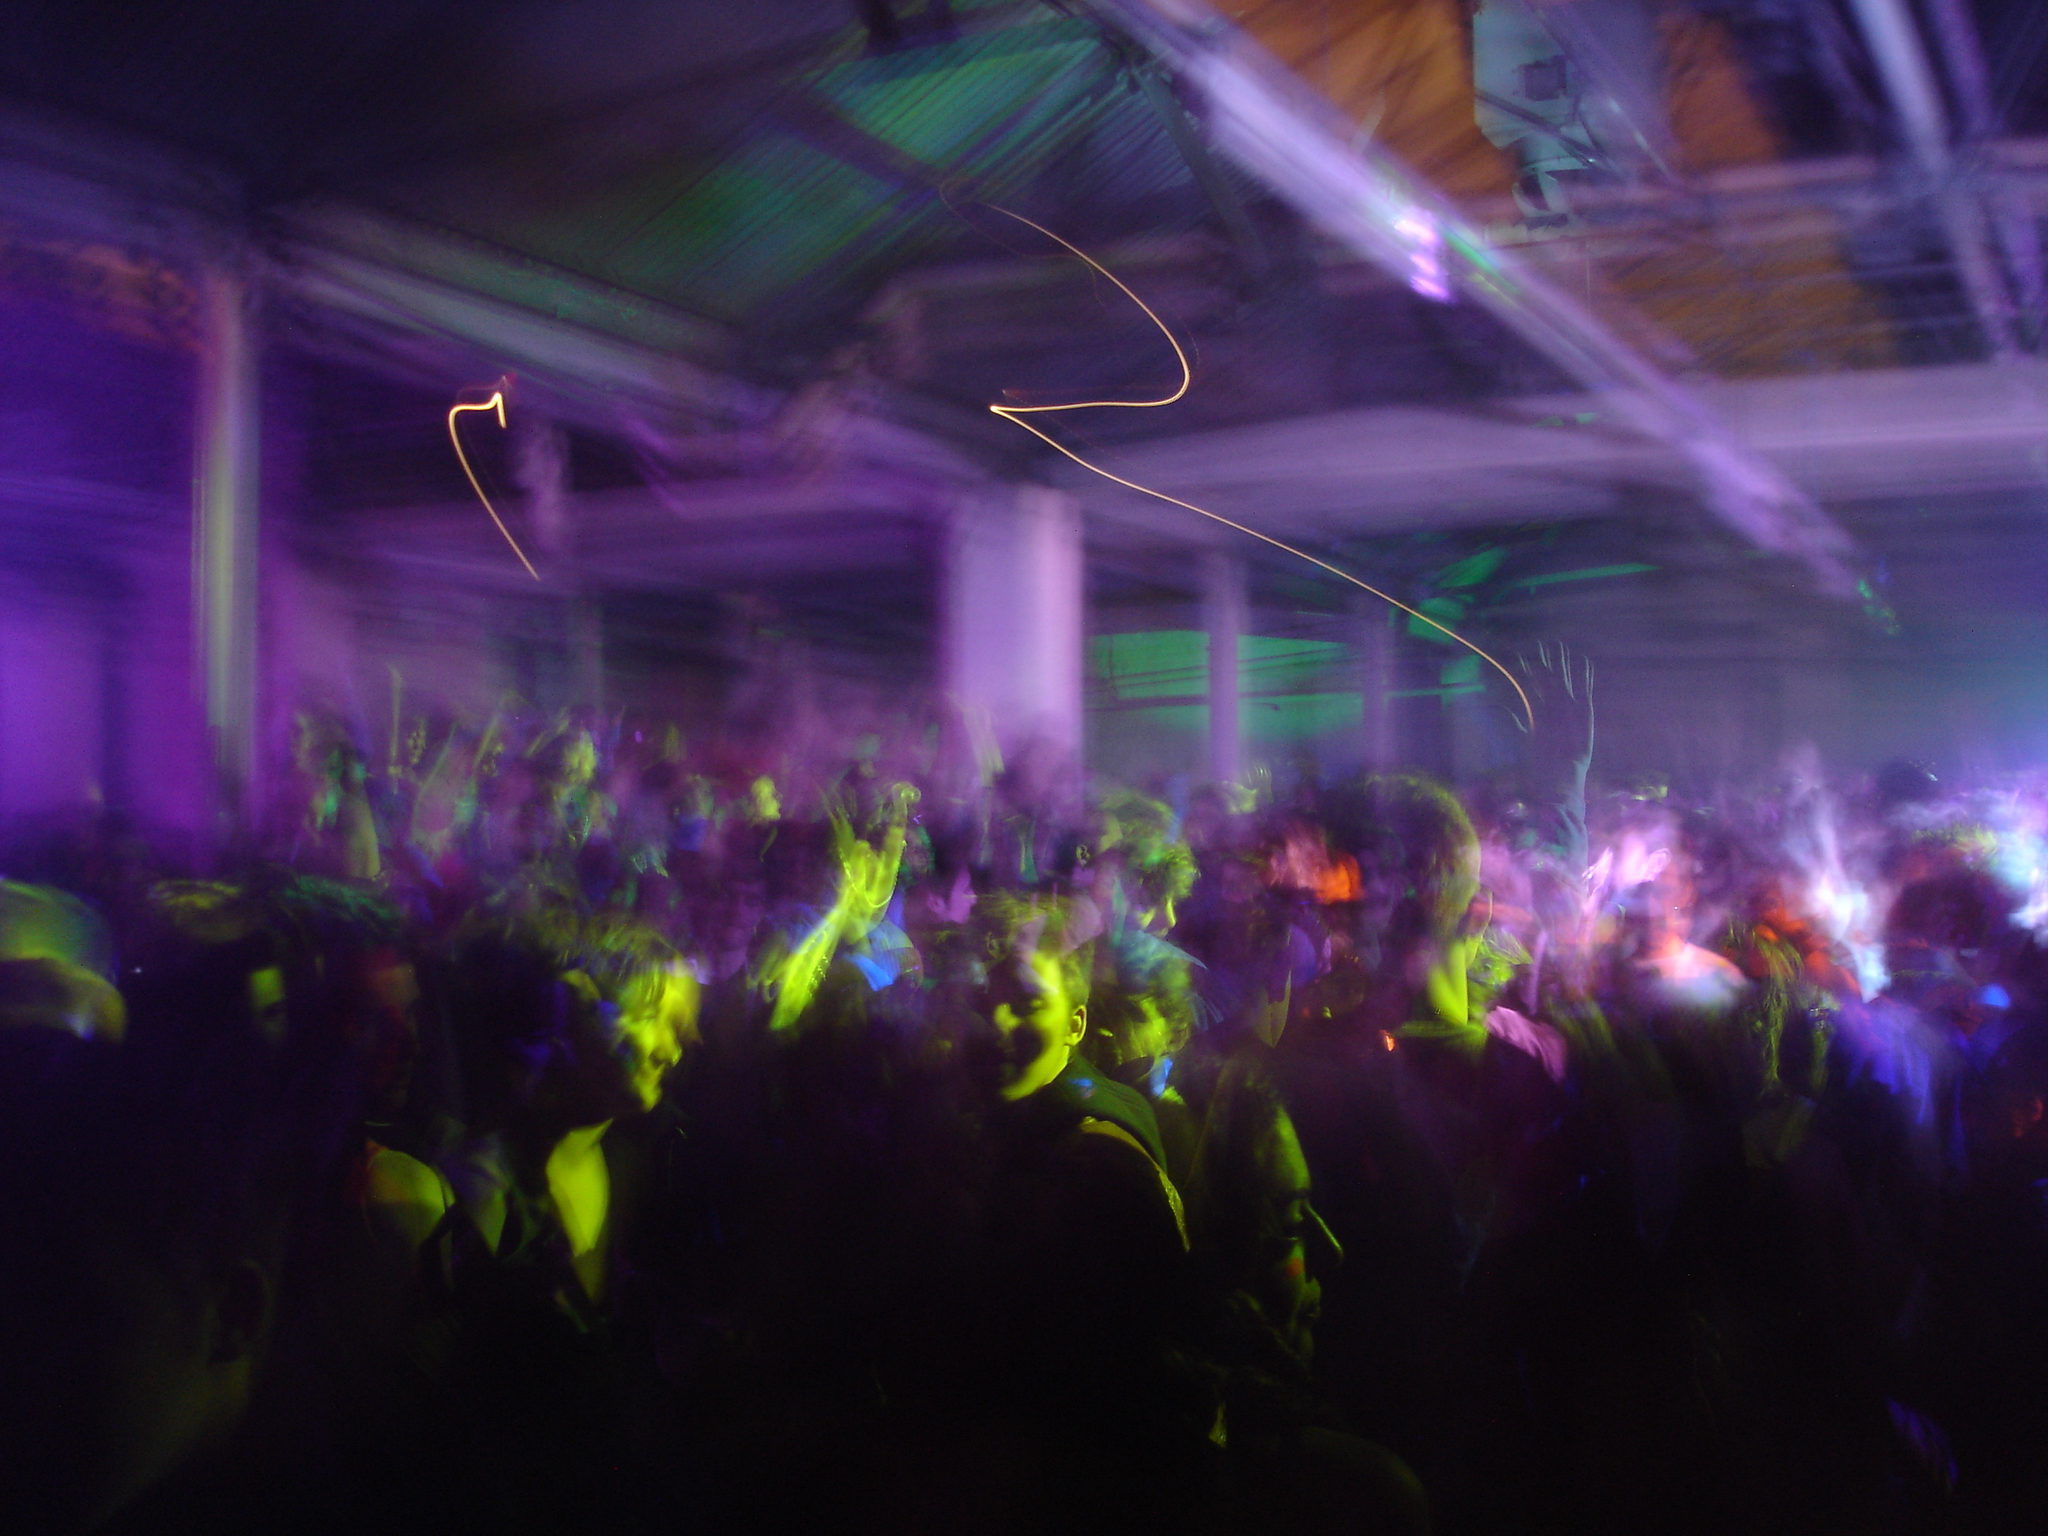 A crowd parties at a rave in London, England. (Courtesy Dominic Simpson, Flickr)